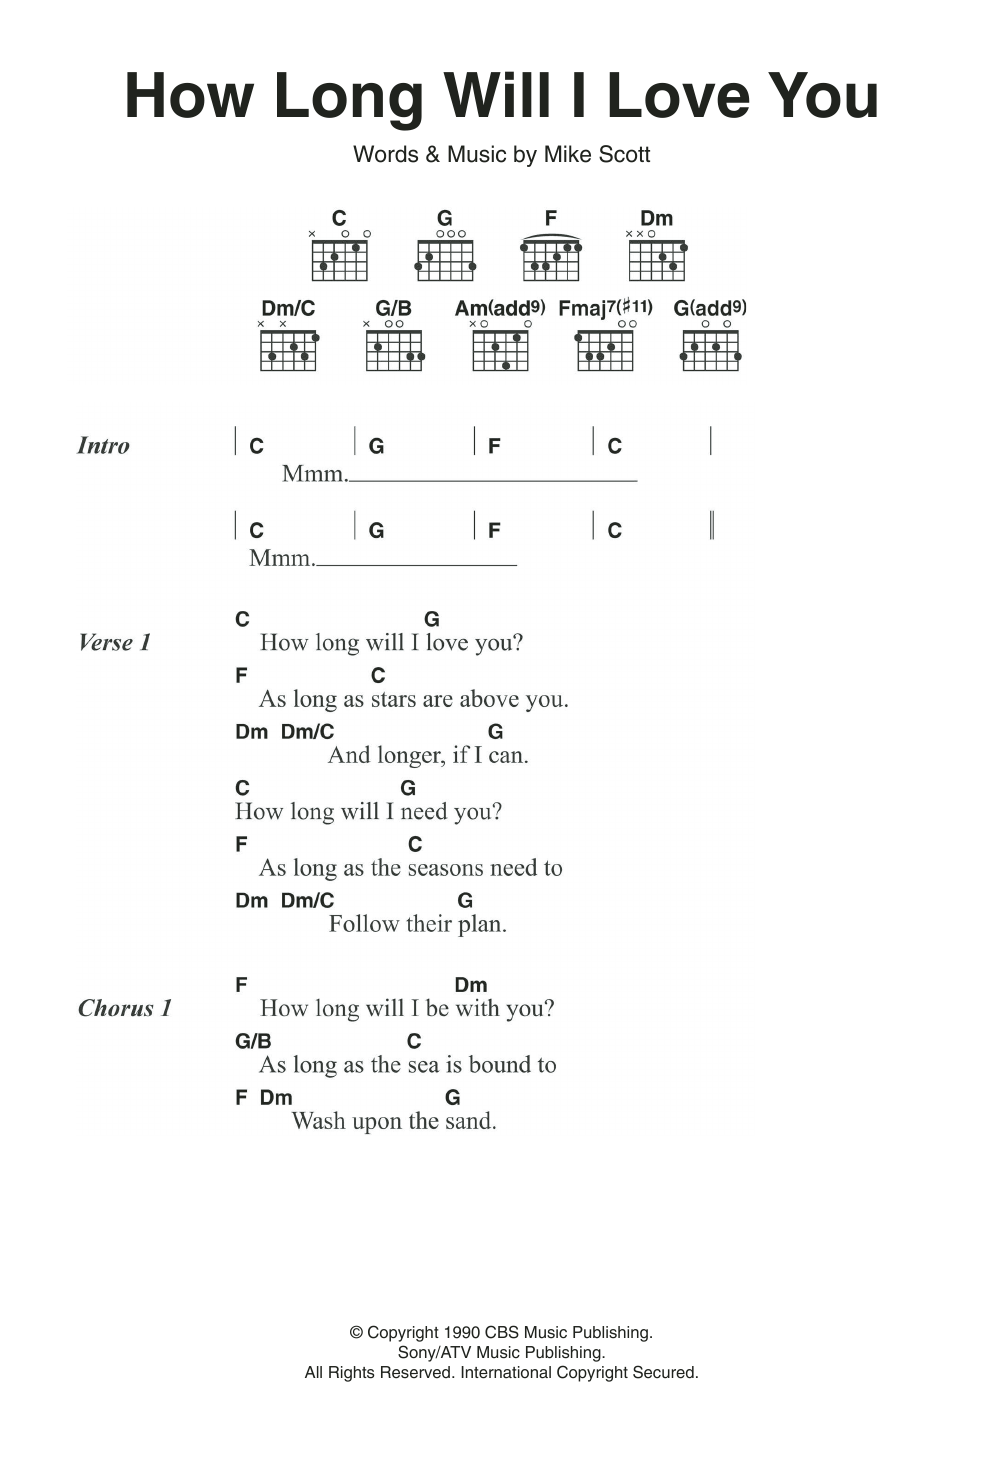 How Long Will I Love You Sheet Music Ellie Goulding Lyrics Chords